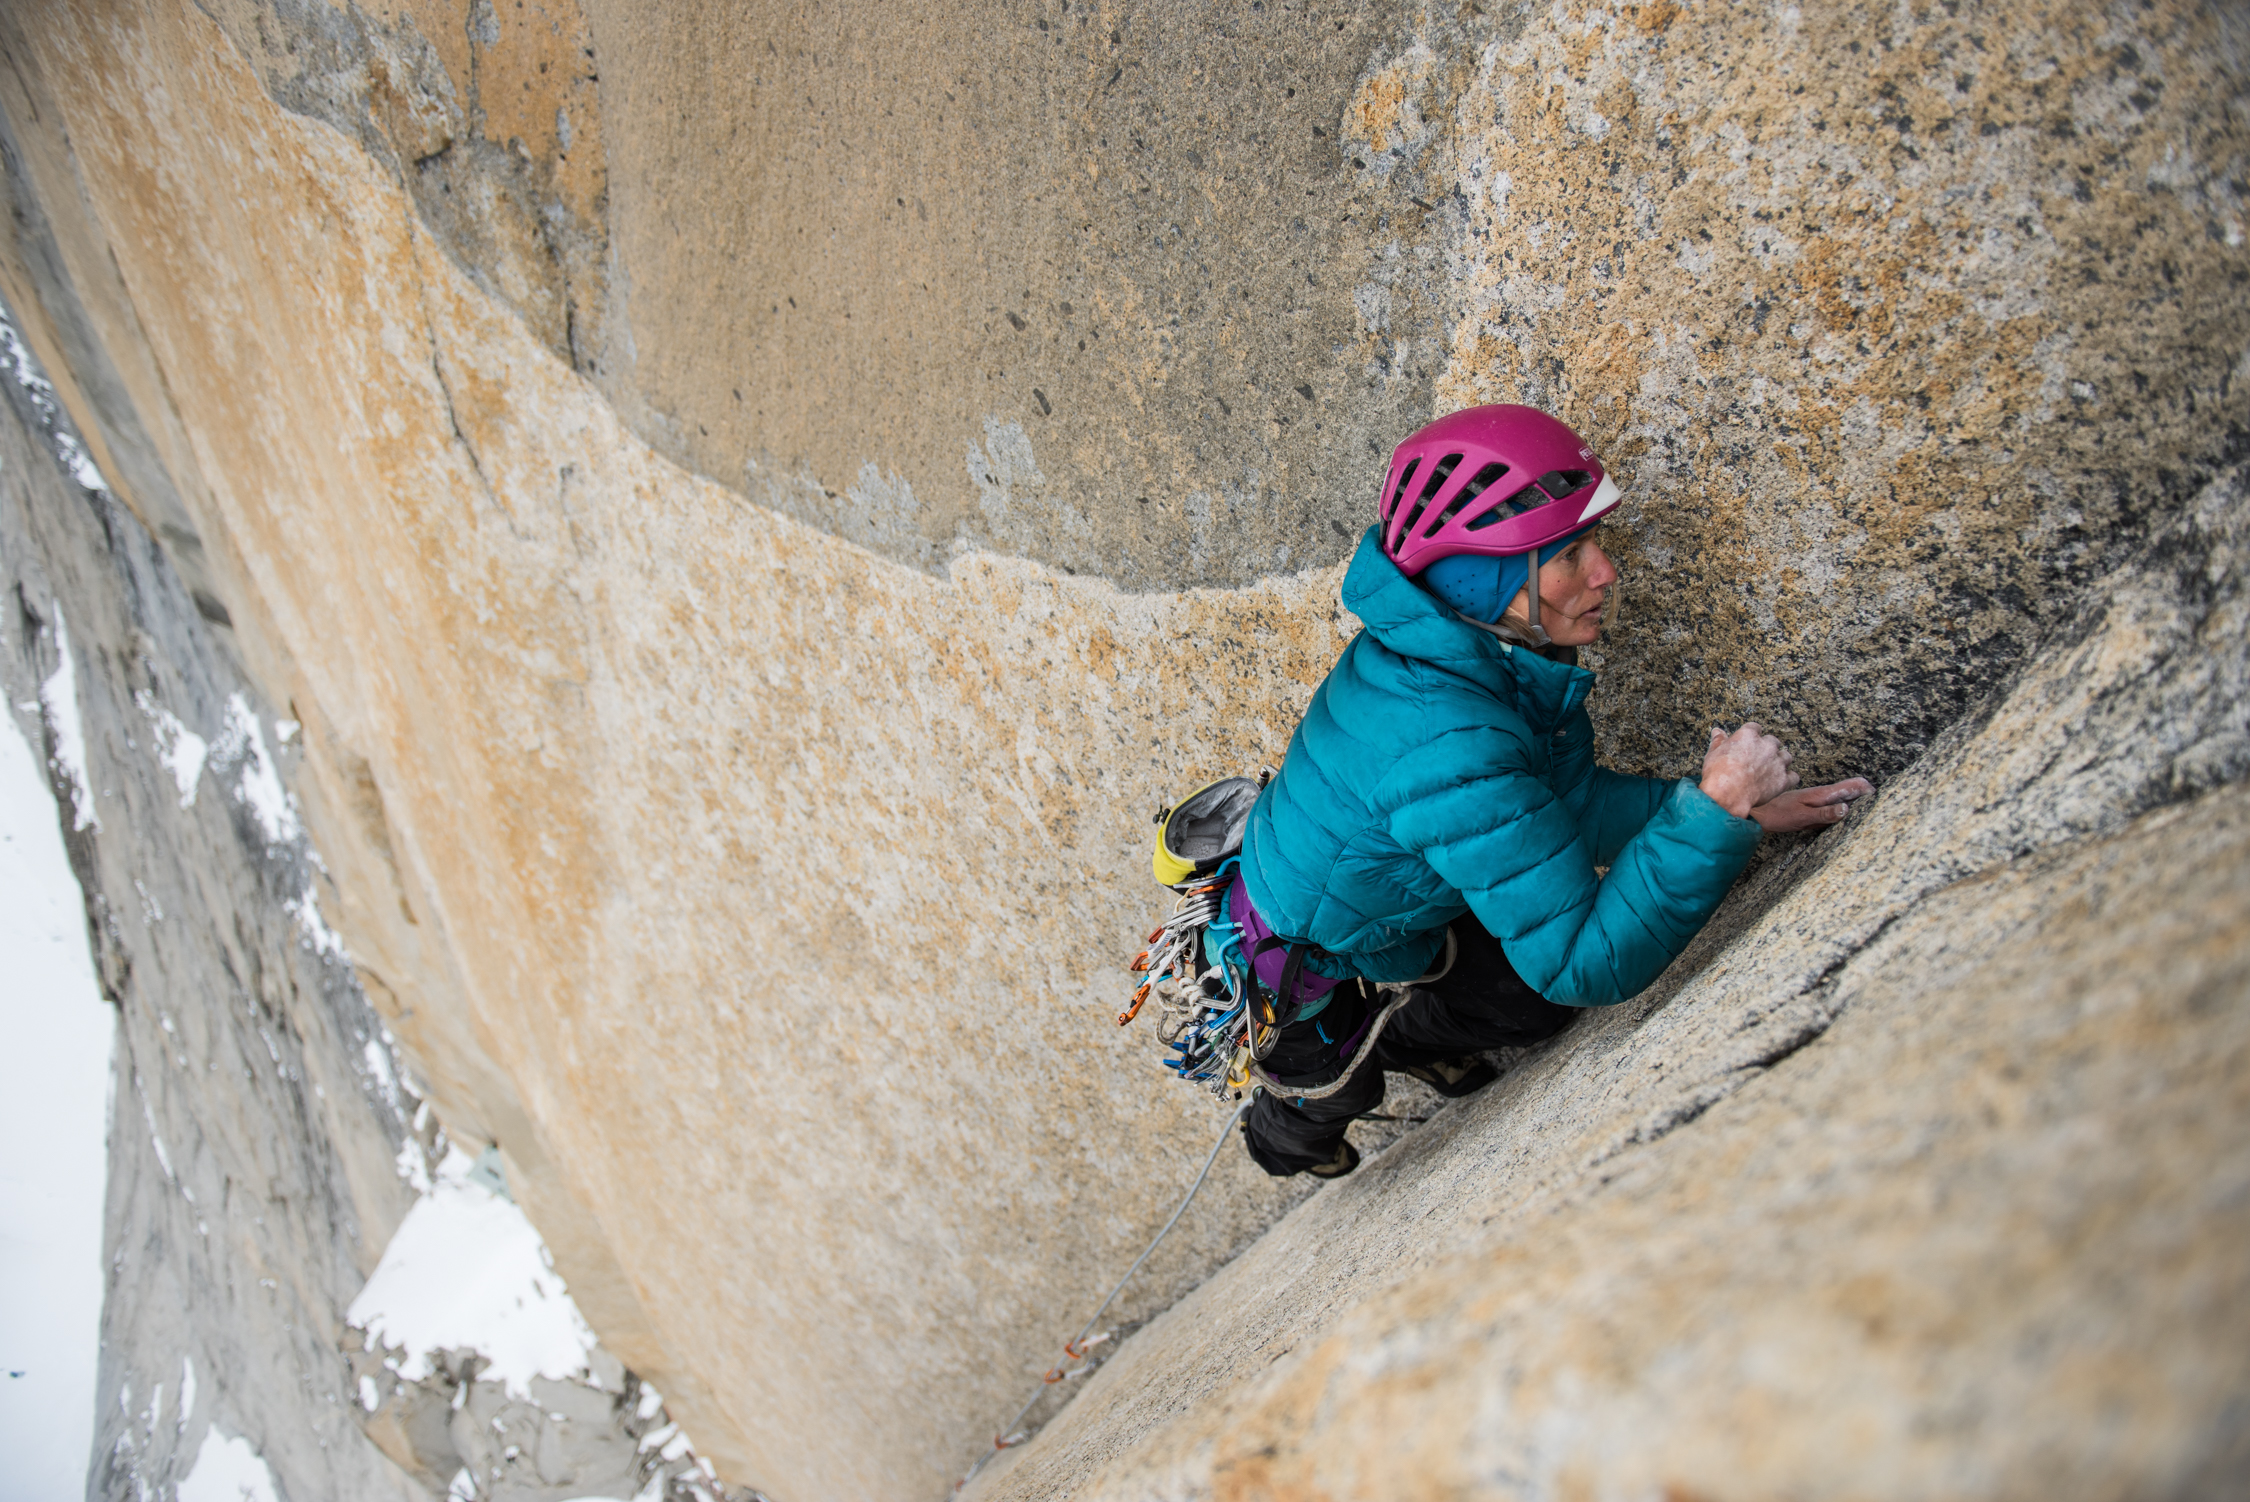 Brette Harrington leads a cold pitch on Riders on the Storm (VI 5.12d/5.13 A3, 1300m), Torre Central, Torres del Paine, Patagonia. [Photo] Drew Smith